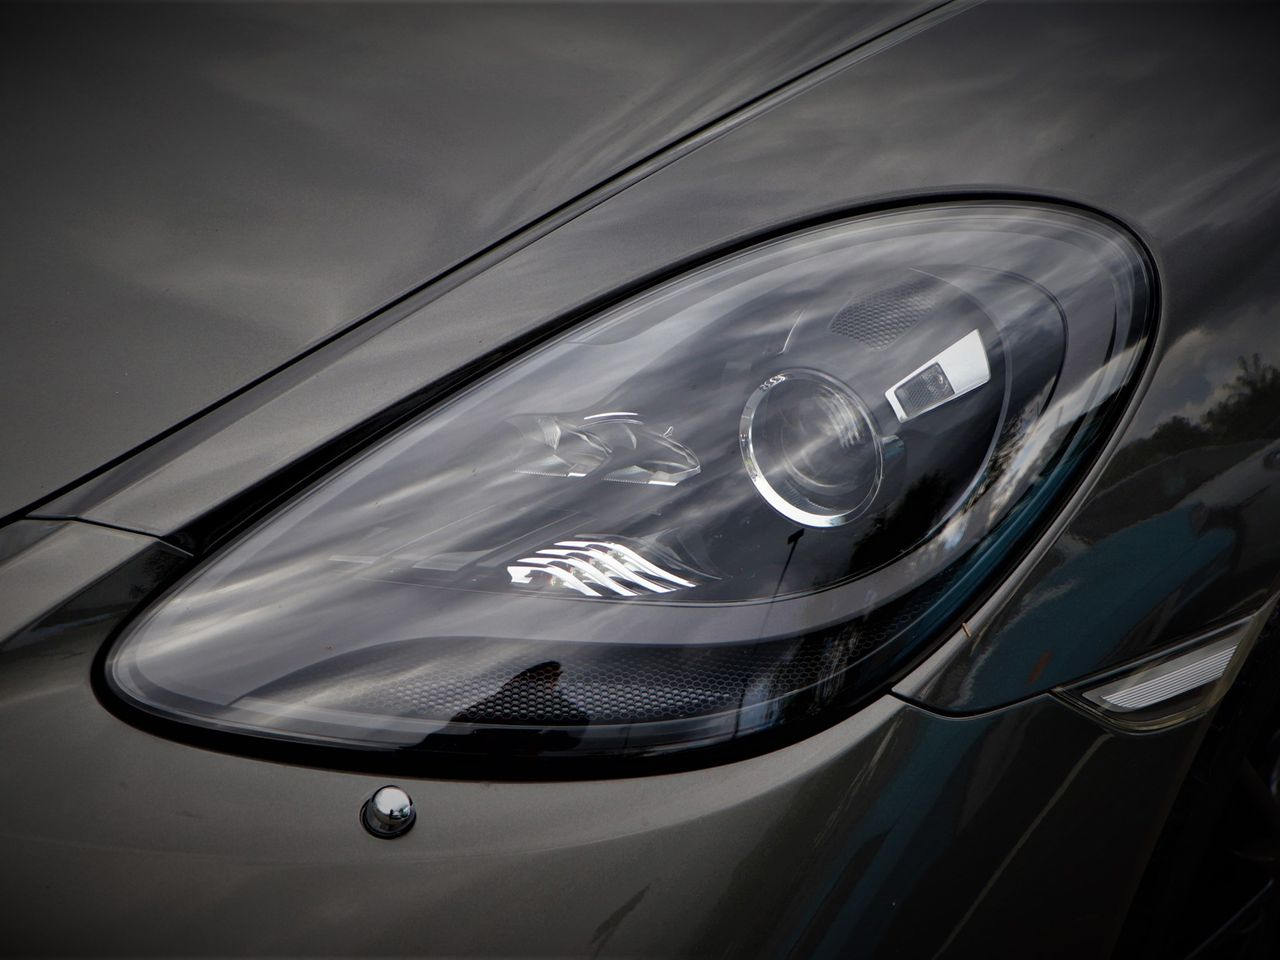 718 (982) BOXSTER image 23